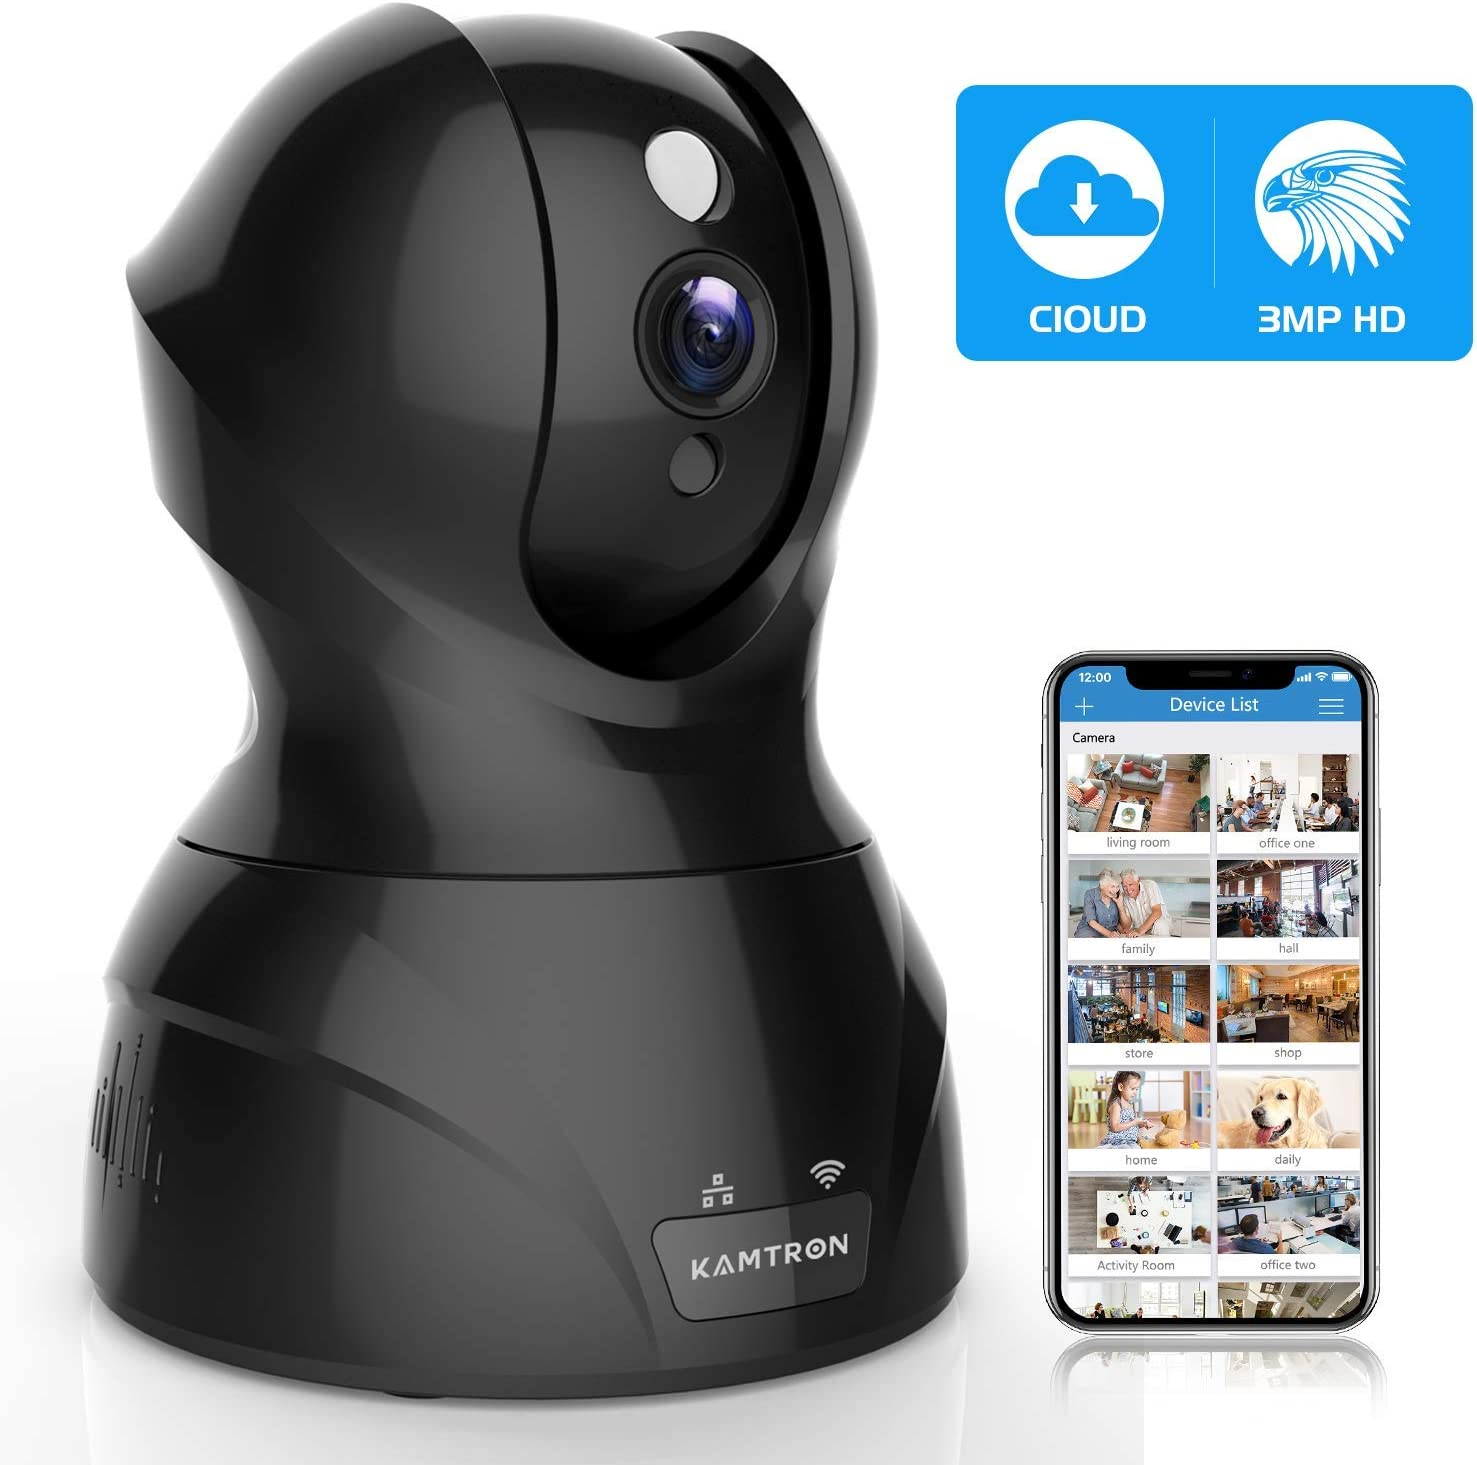 Security Camera Pet WiFi Camera – KAMTRON 1536P Indoor Wireless IP Camera Full HD 3MP Home Video Surveillance System with IR Night Vision, Motion Detection and Two-Way Audio – Cloud Storage